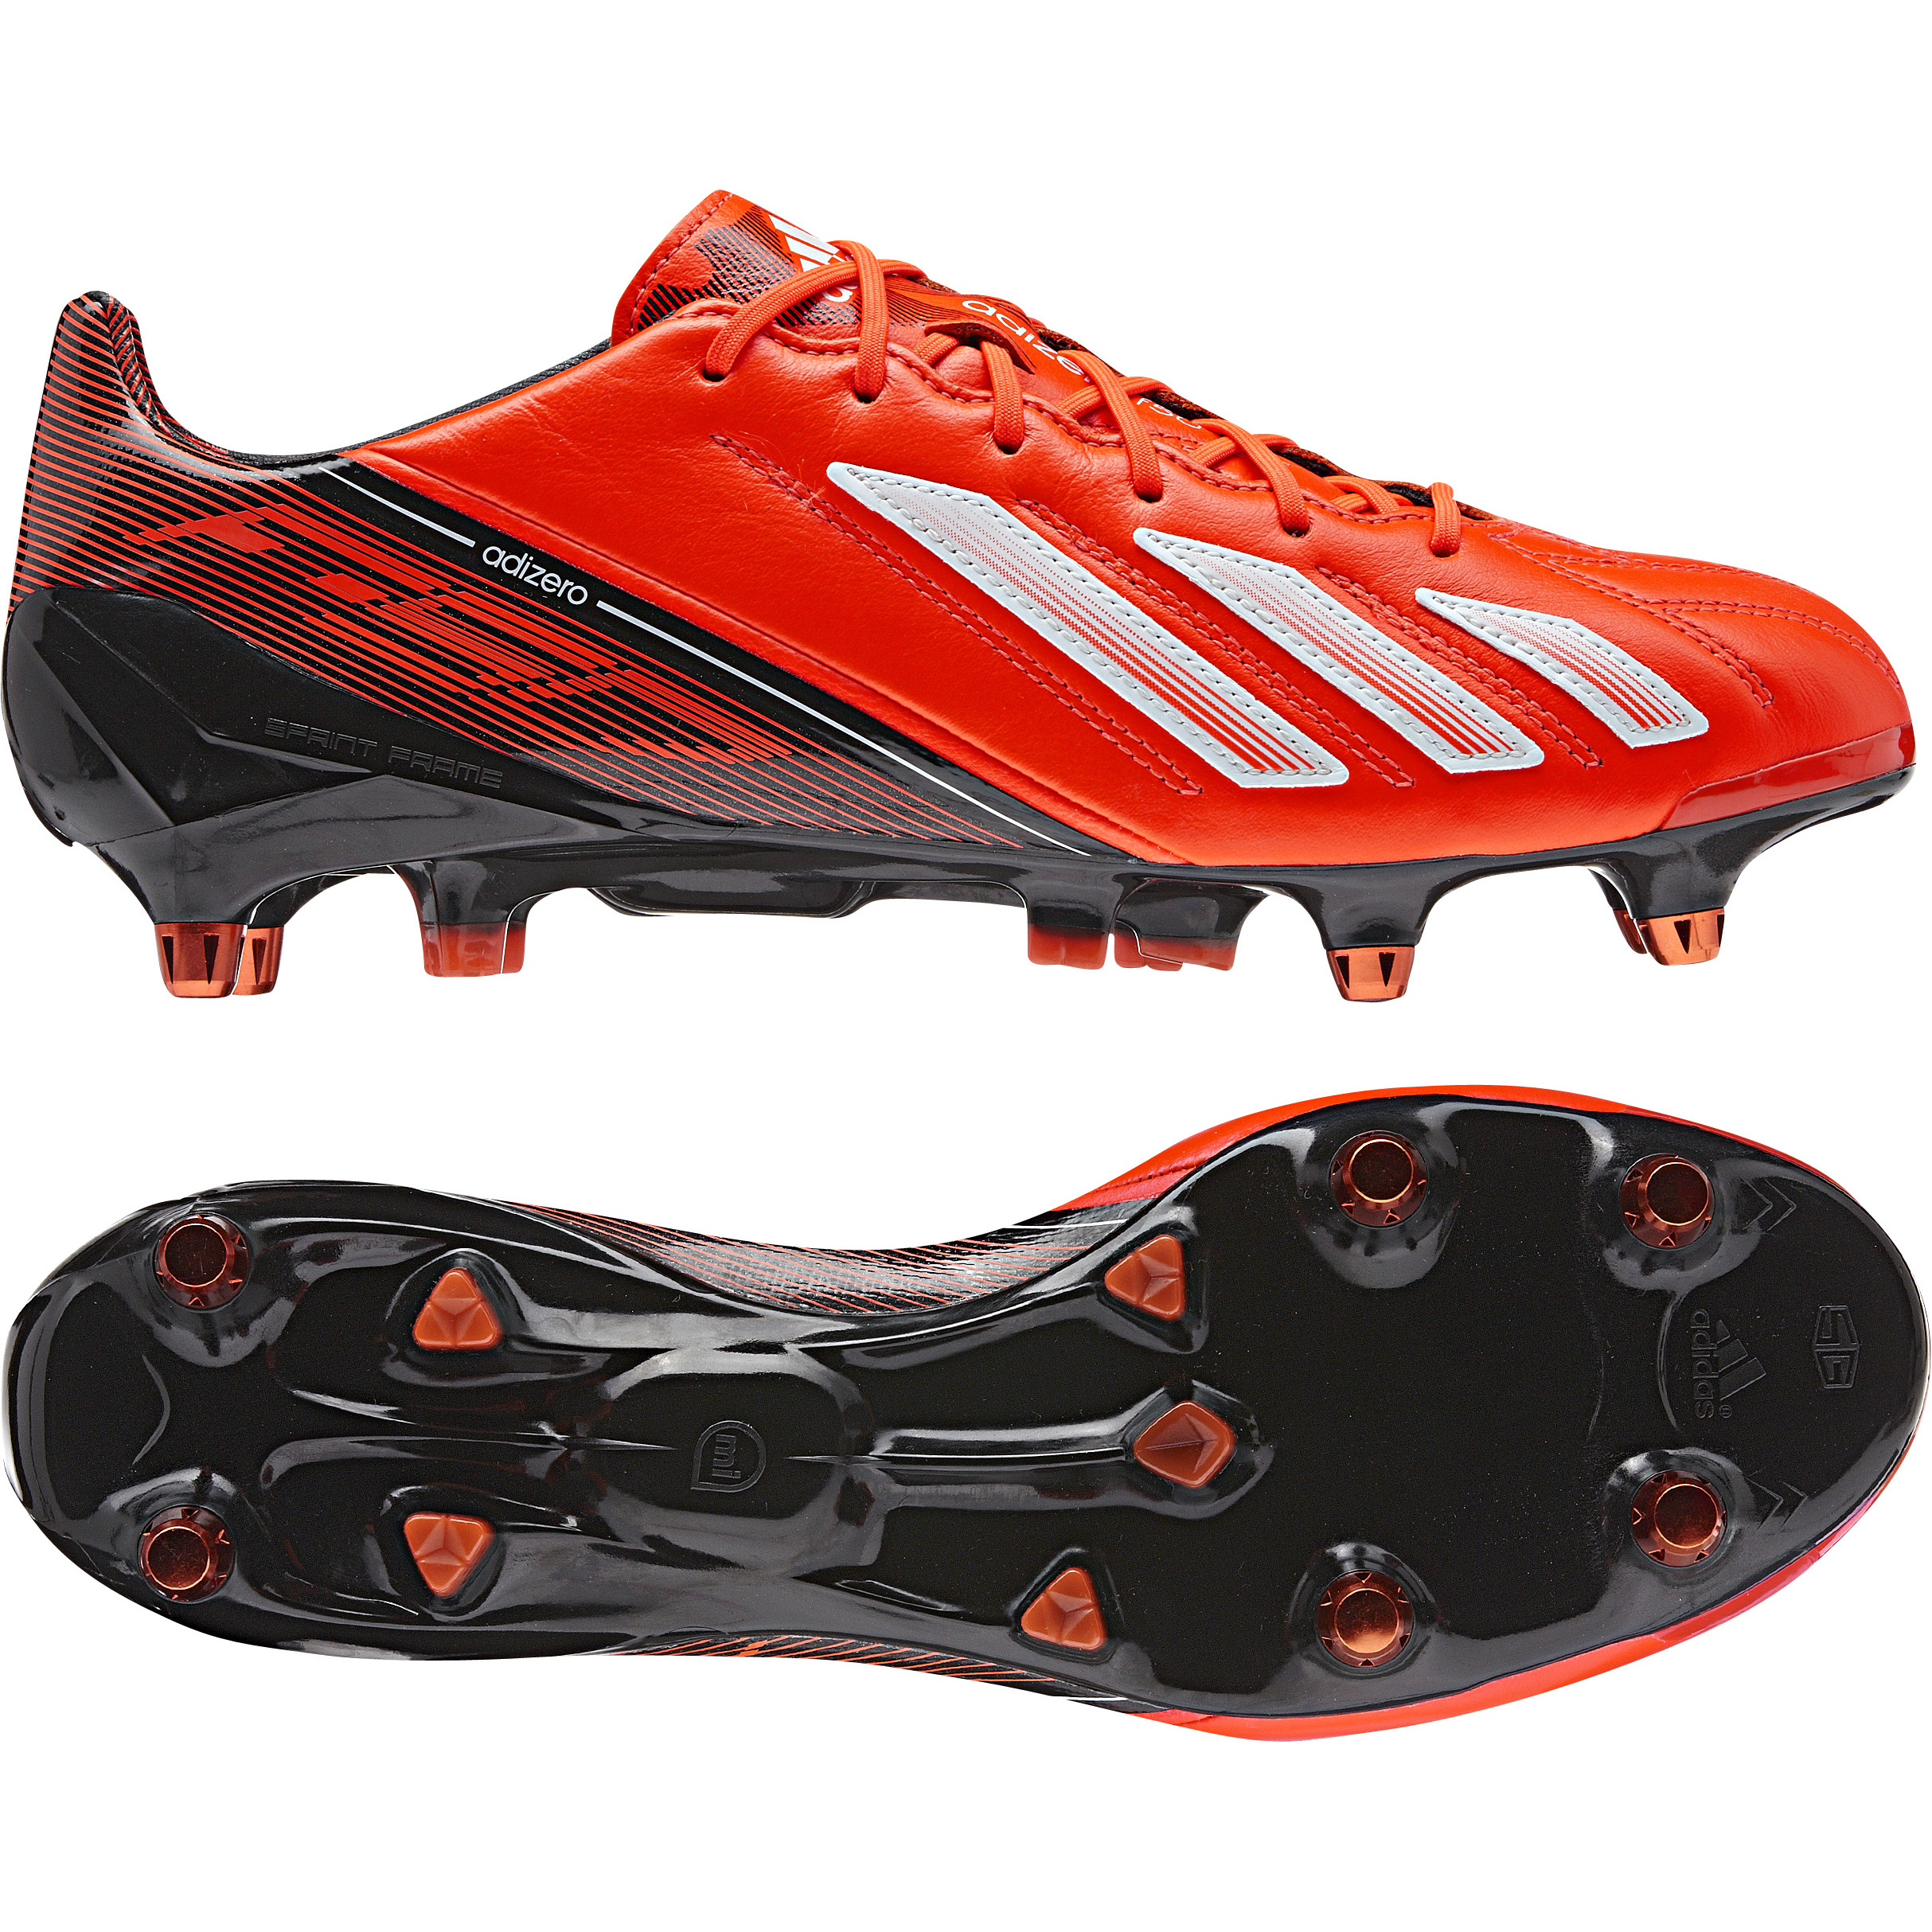 Adidas adizero F50 XTRX Leather Soft Ground Football Boots Red